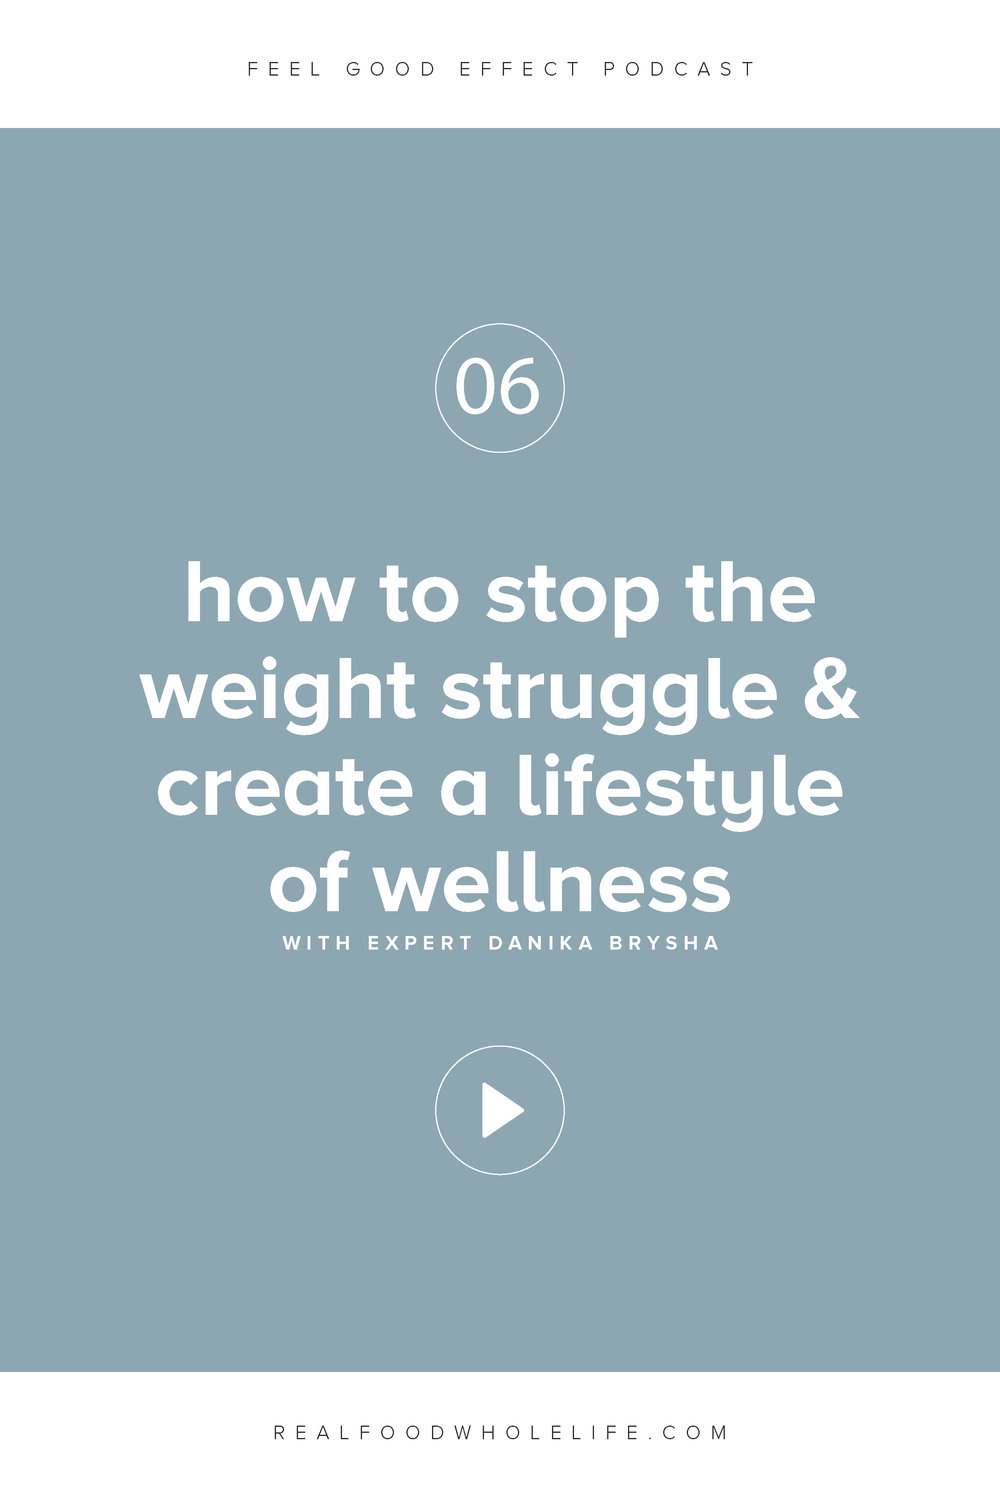 How to Stop the Weight Struggle & Create a Lifestyle of Wellness